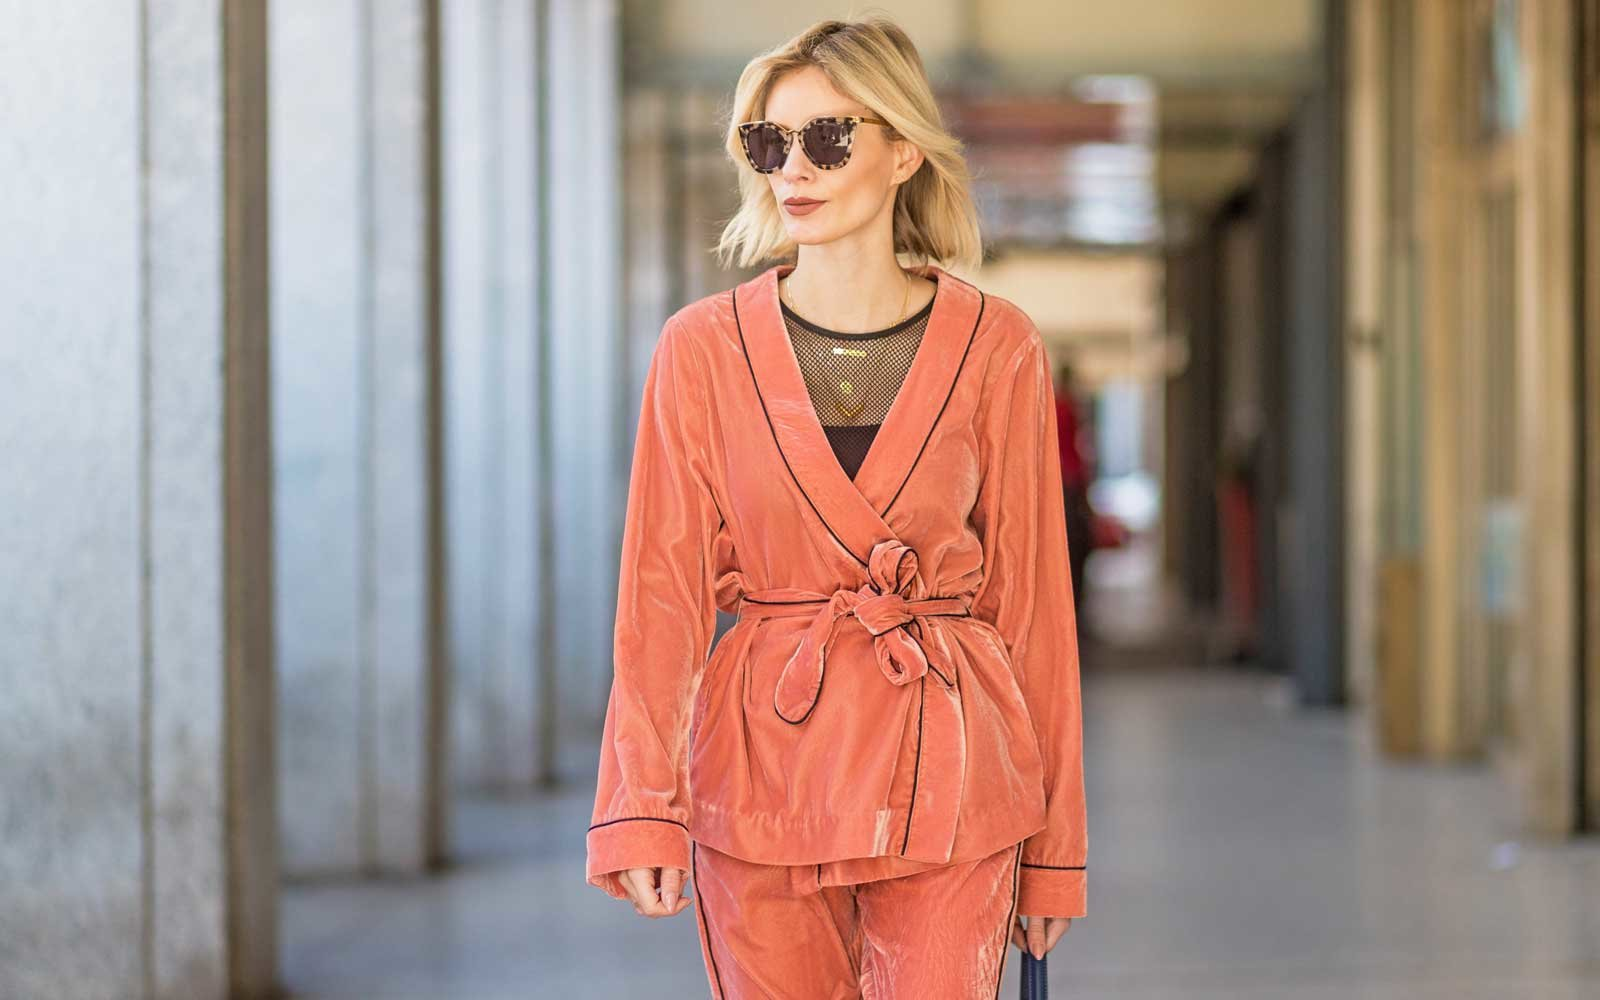 chic-pajamas-for-flight-CHICPJ1118.jpg